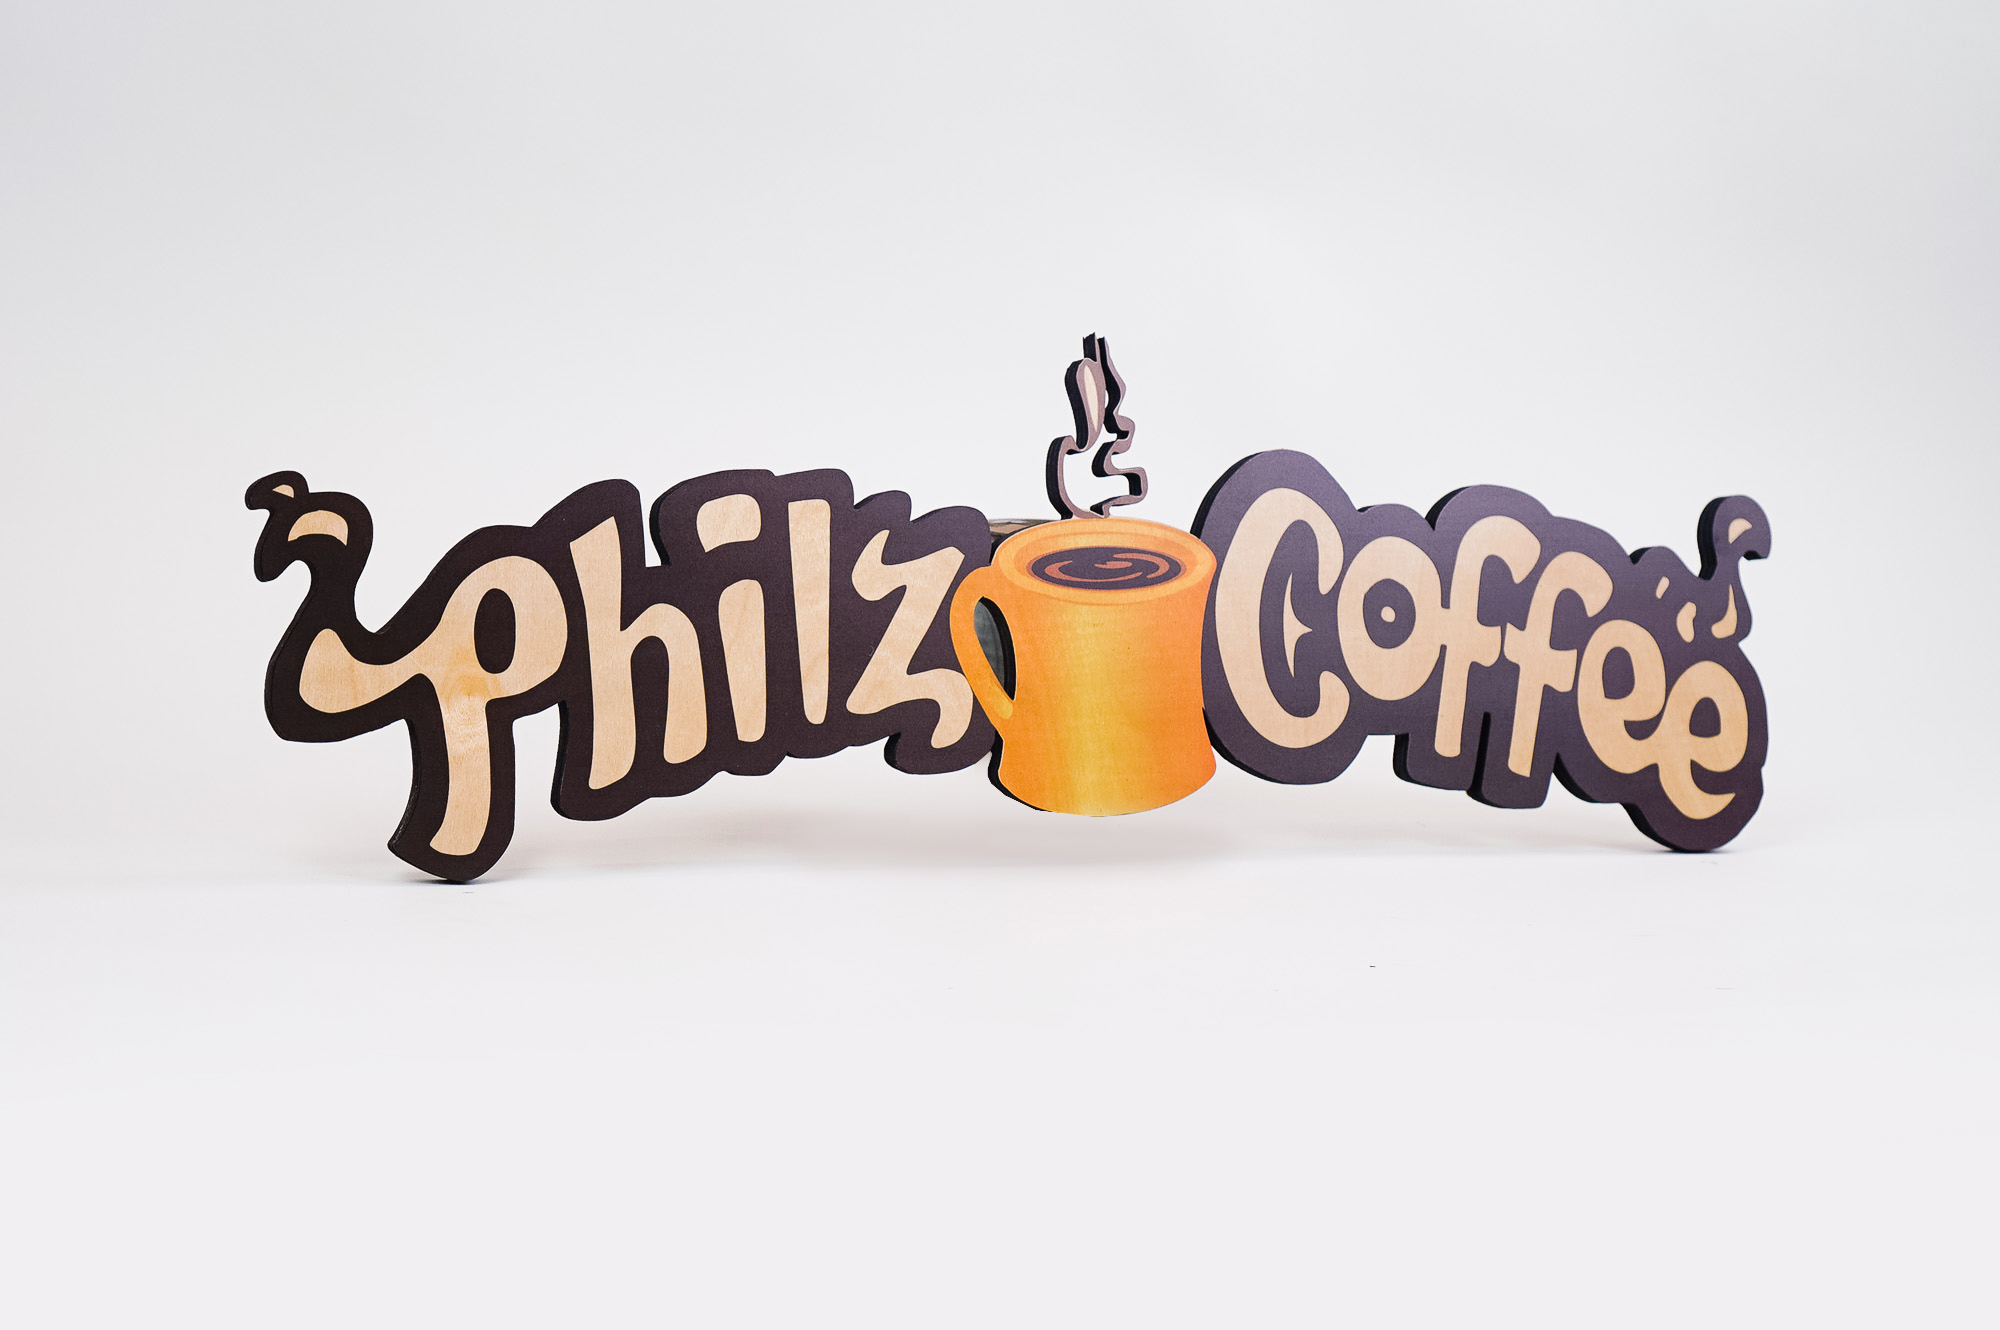 Printed wood, cafe menu sign for Philz Coffee, a coffee company and coffeehouse chain based in San Francisco, California.